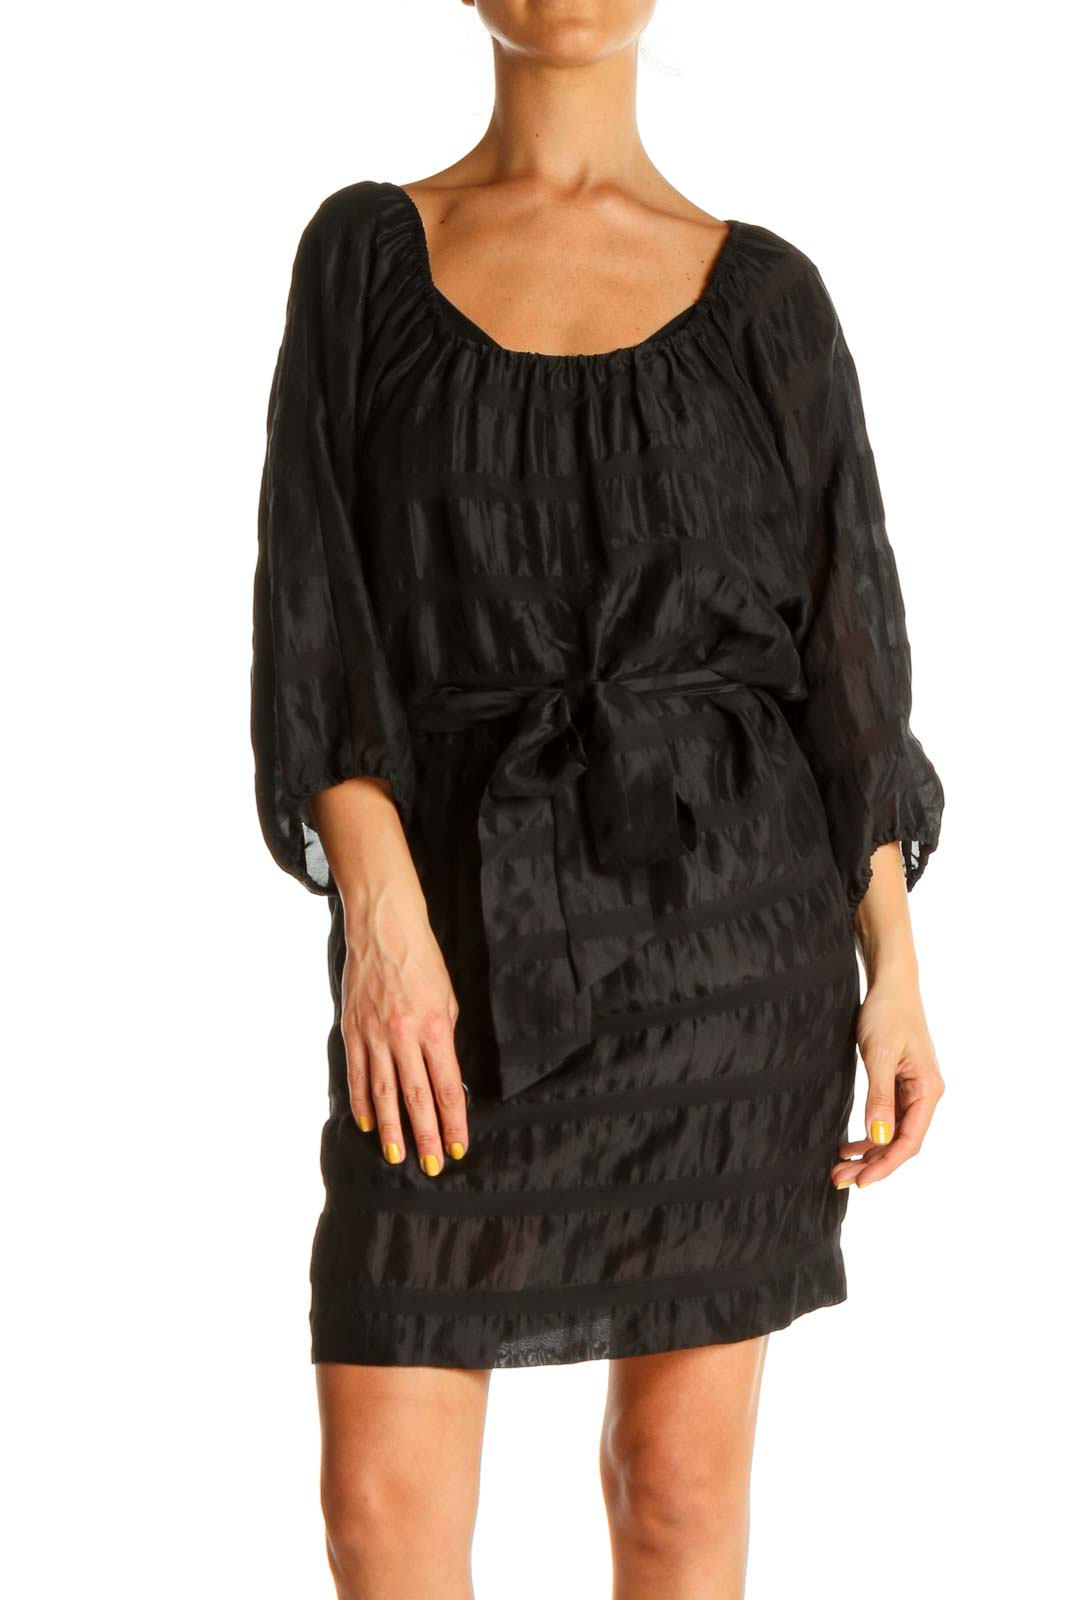 Black Solid Chic Shift Dress Front